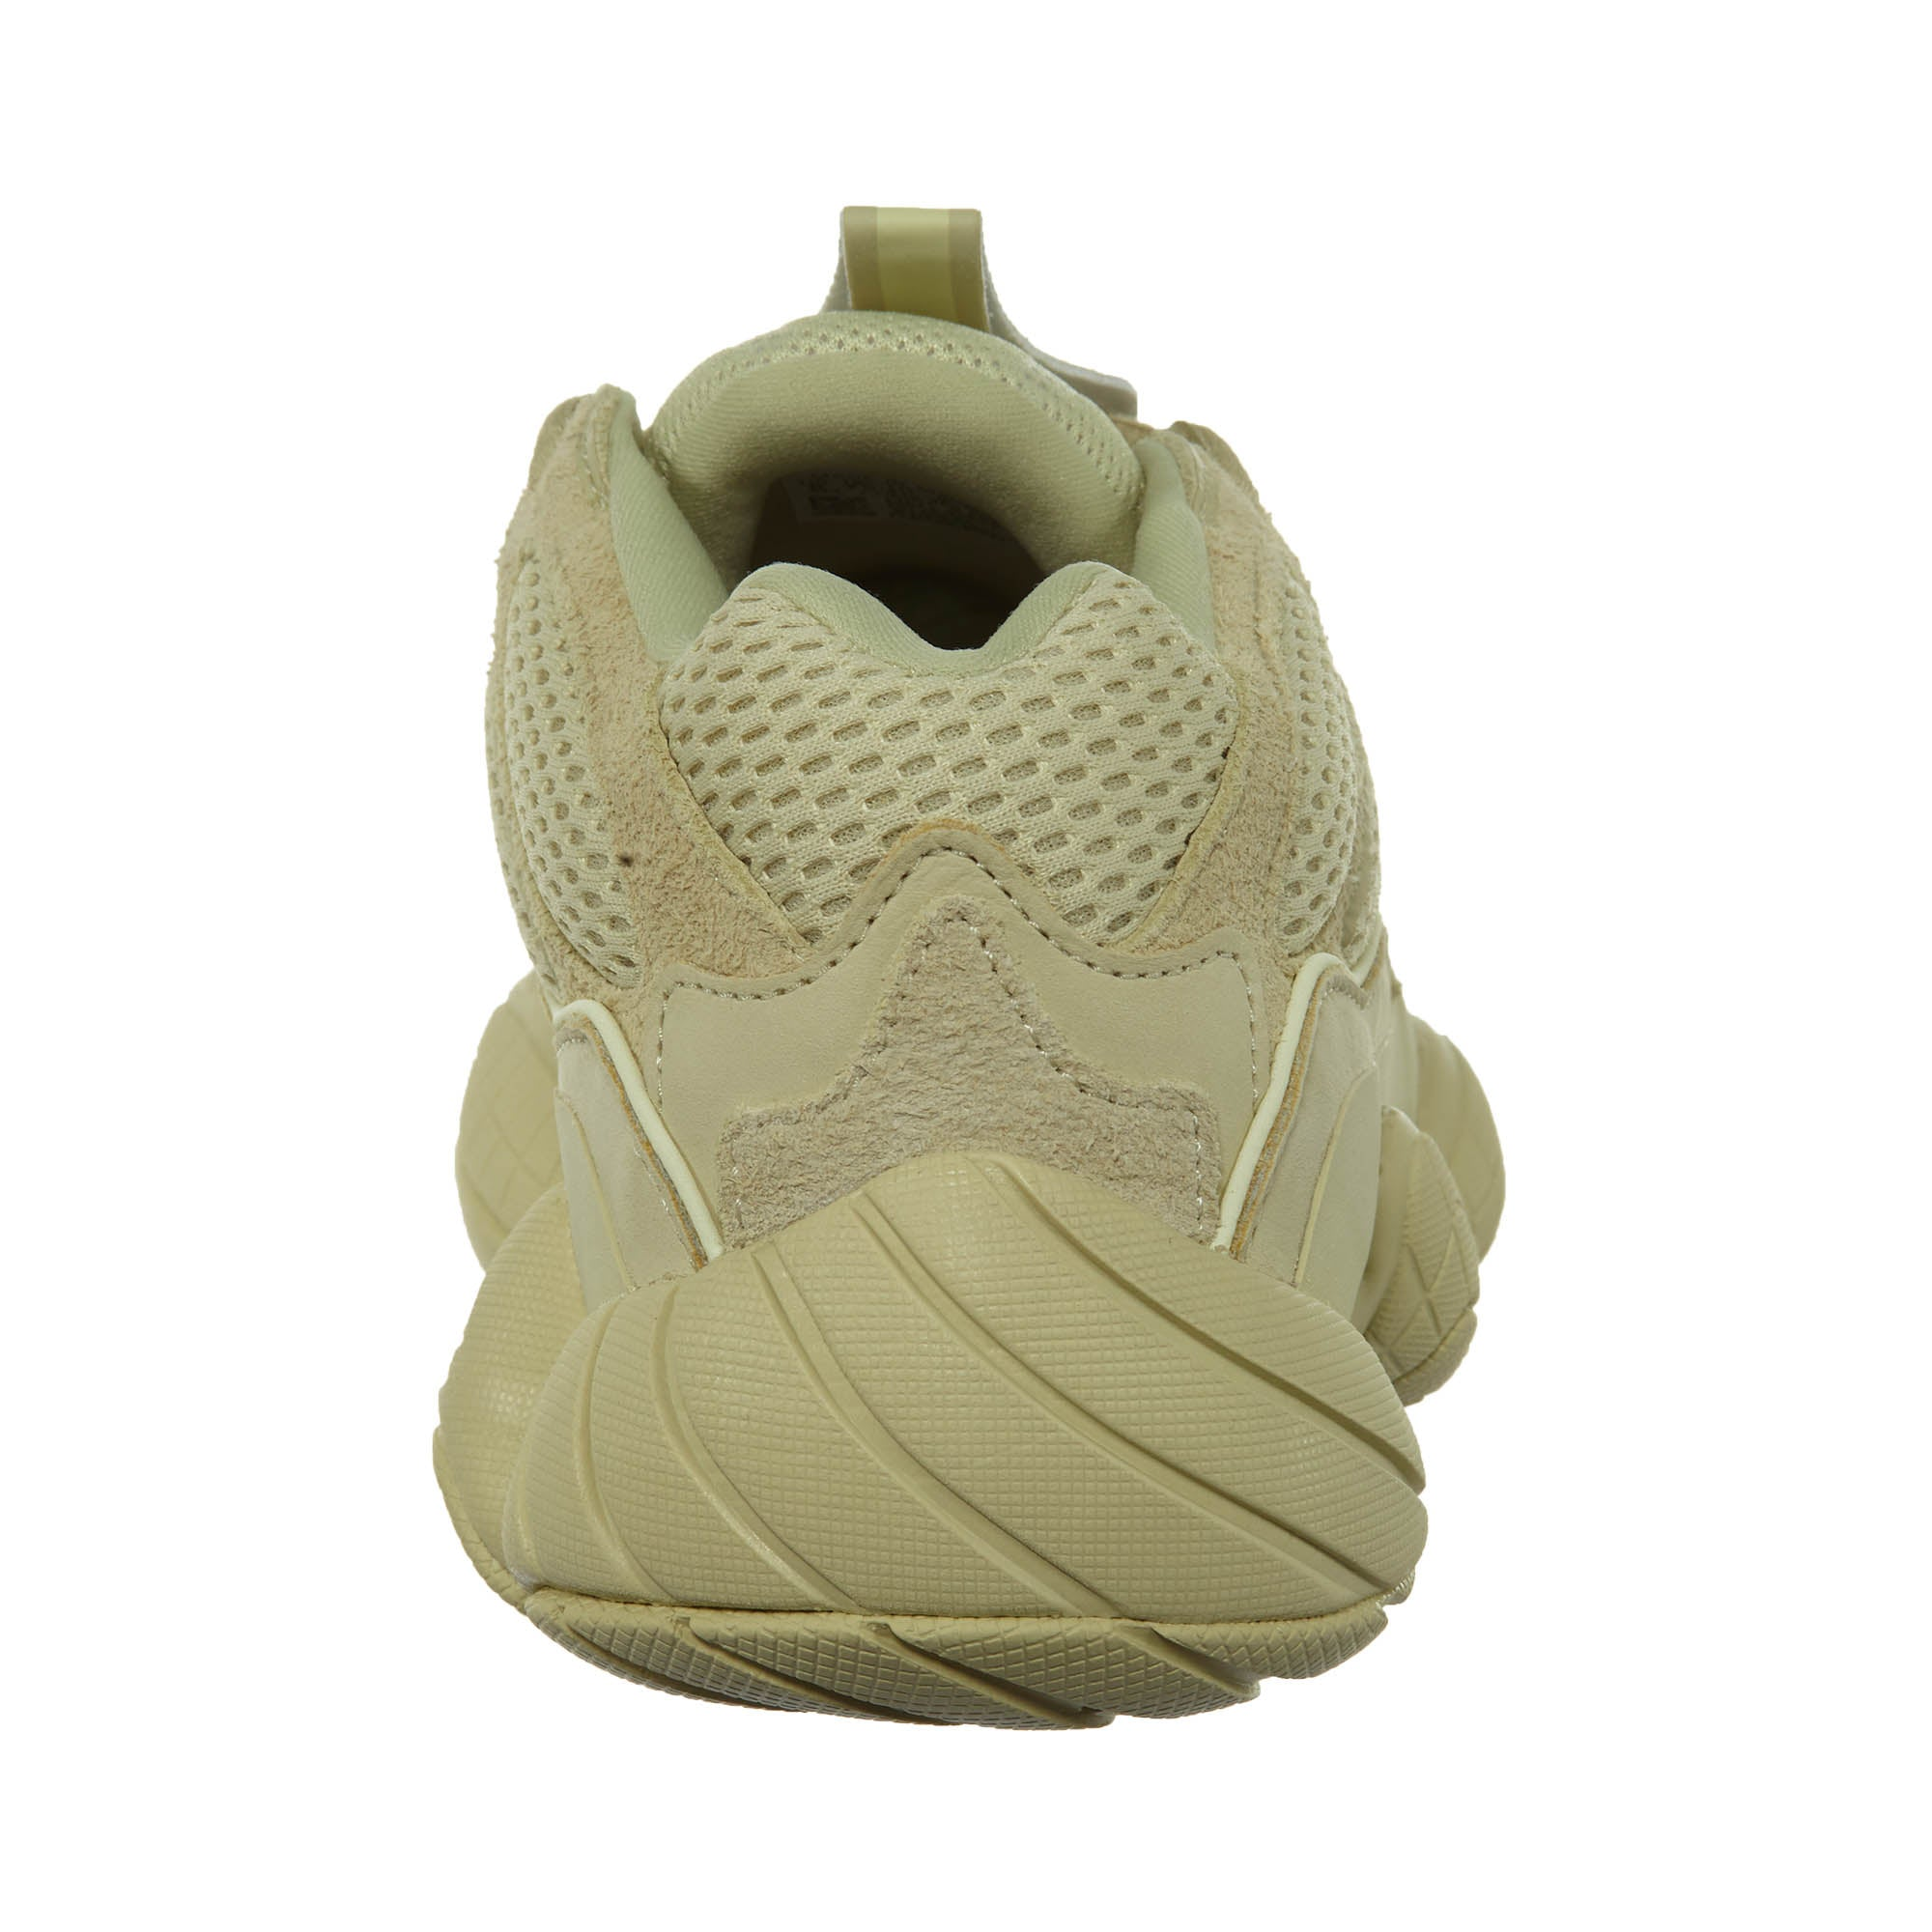 53b7422af Adidas Yeezy 500 Super Moon Yellow. ADIDAS   Athletic Shoes   Sneakers